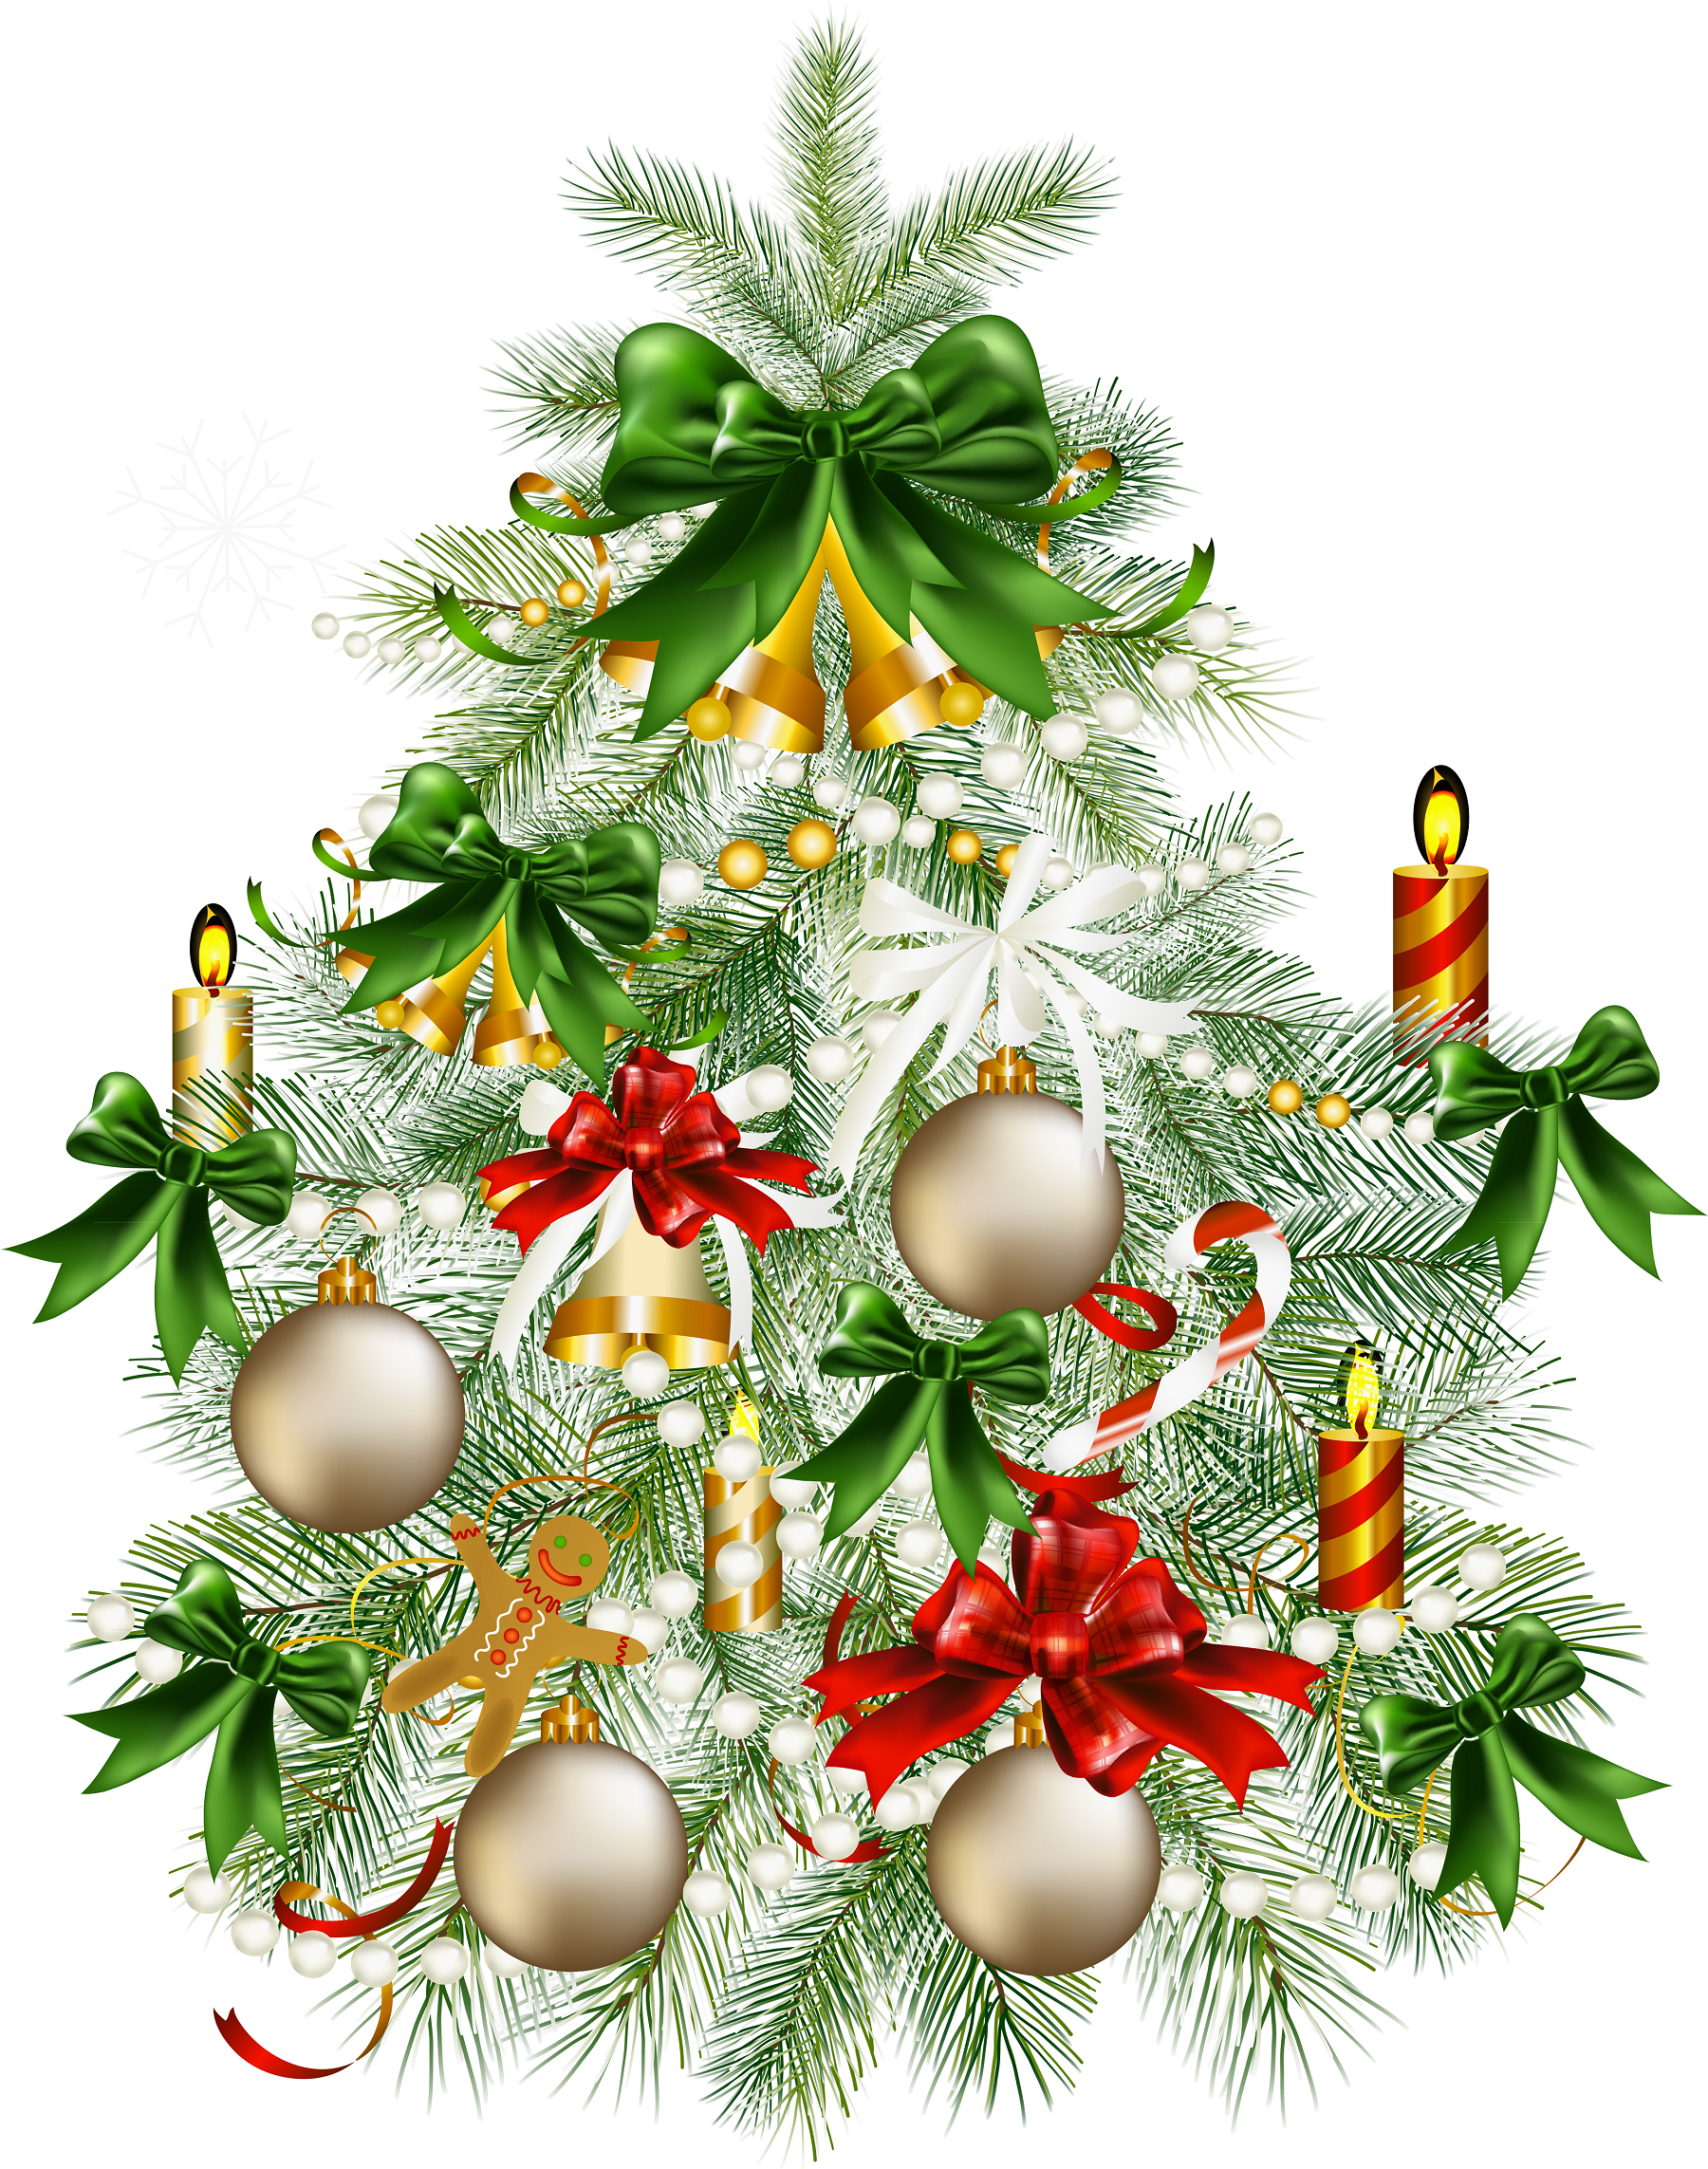 Christmas tree clip art large.